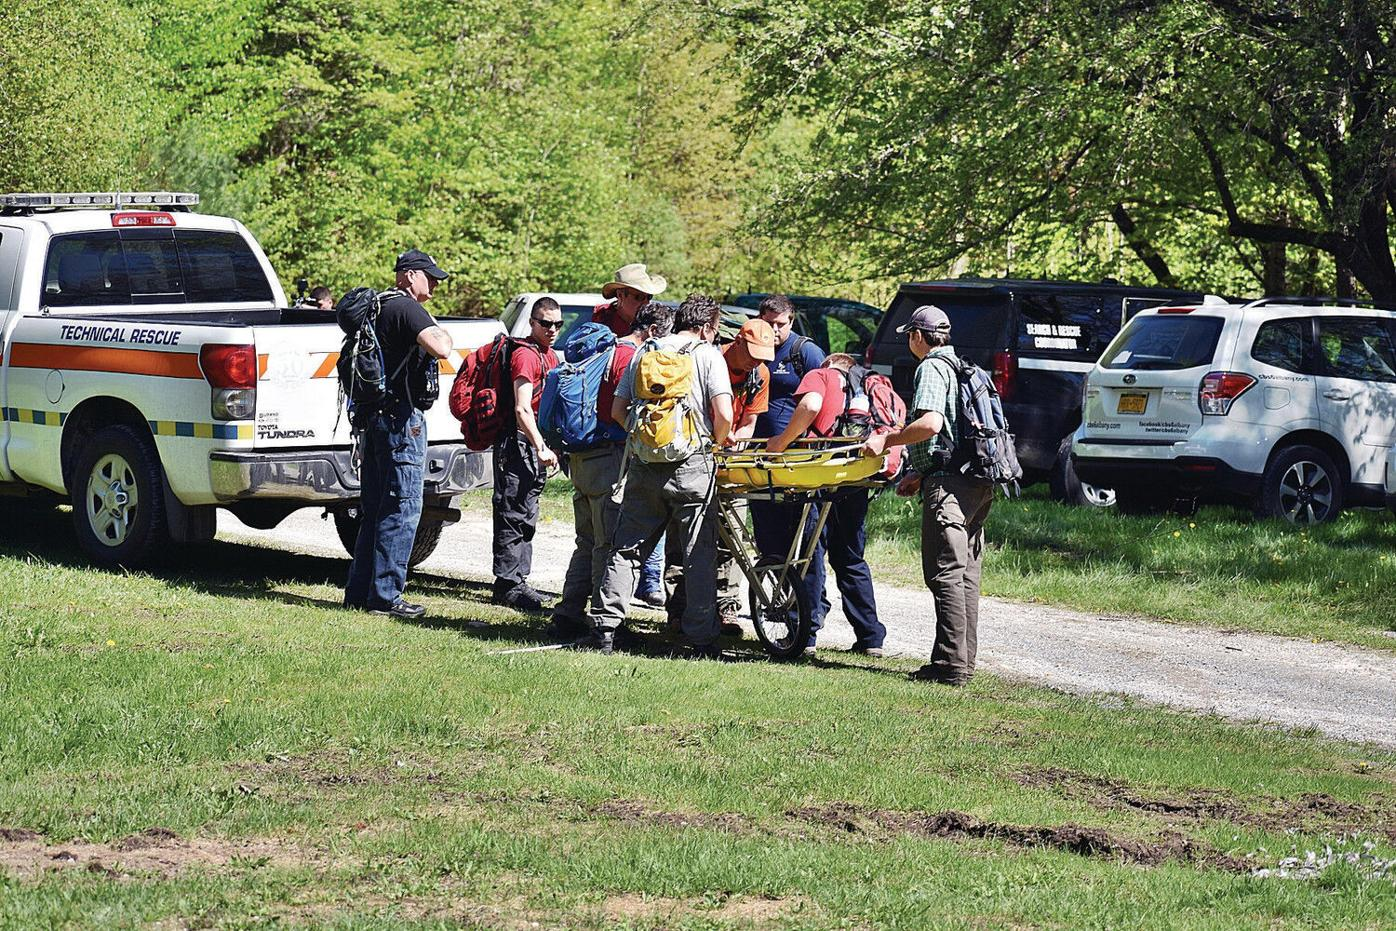 Pilot killed in plane crash identified as a Connecticut man